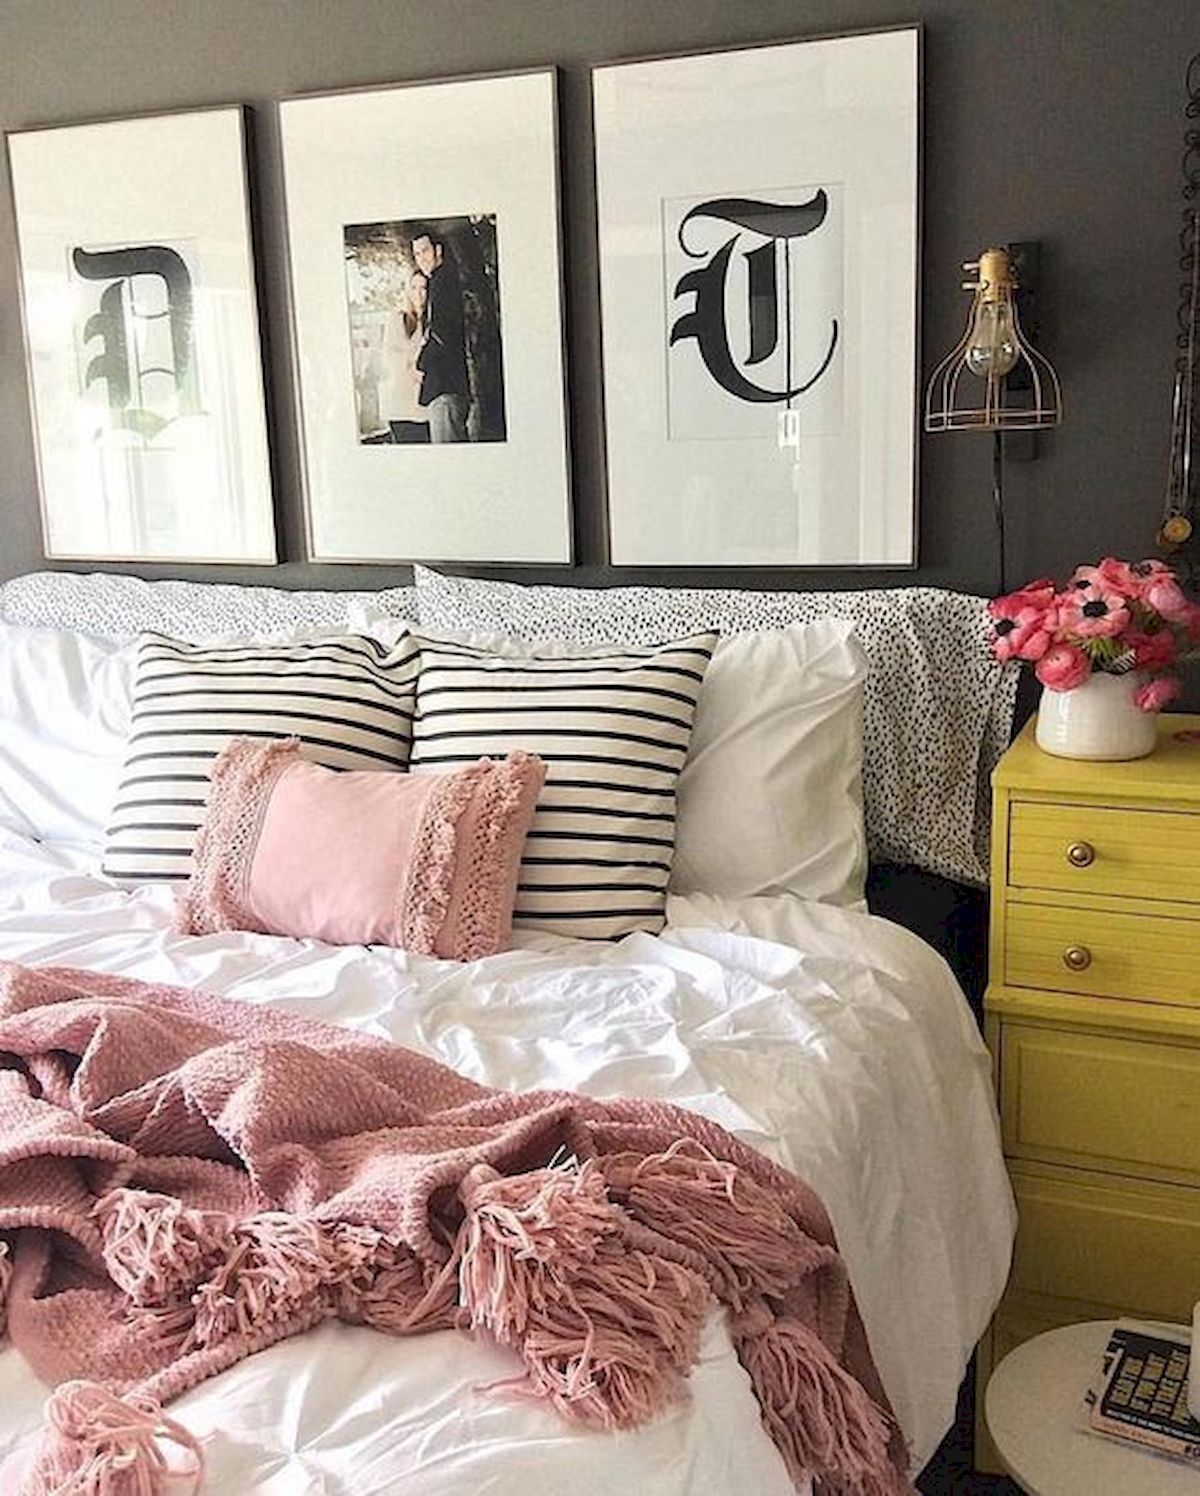 82 Cool Bedroom Ideas for Creative Couples | Small room ...